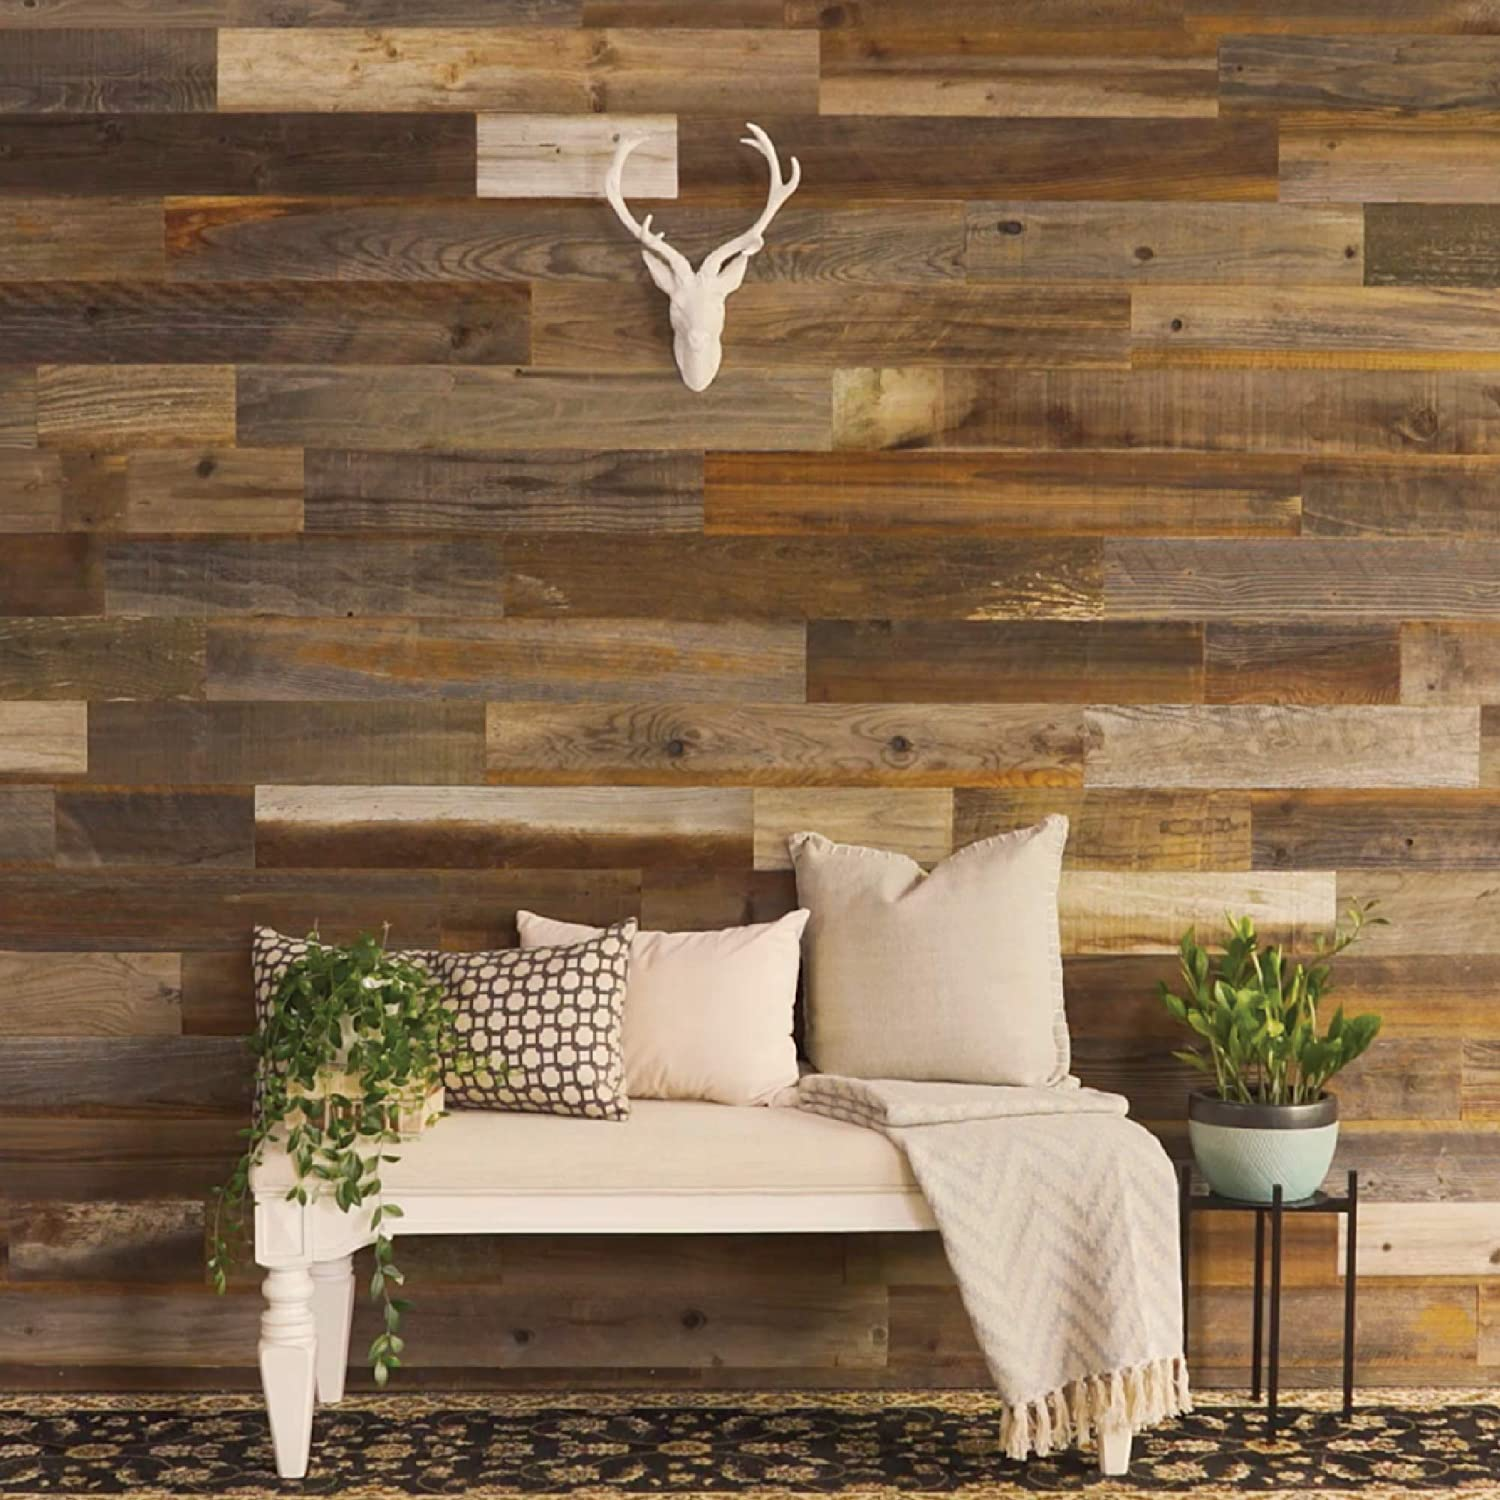 Amazon Com Weekend Walls Reclaimed Weathered Redwood Diy Easy Peel And Stick Wood Wall Paneling 40 Sq Ft Natural Home Improvement